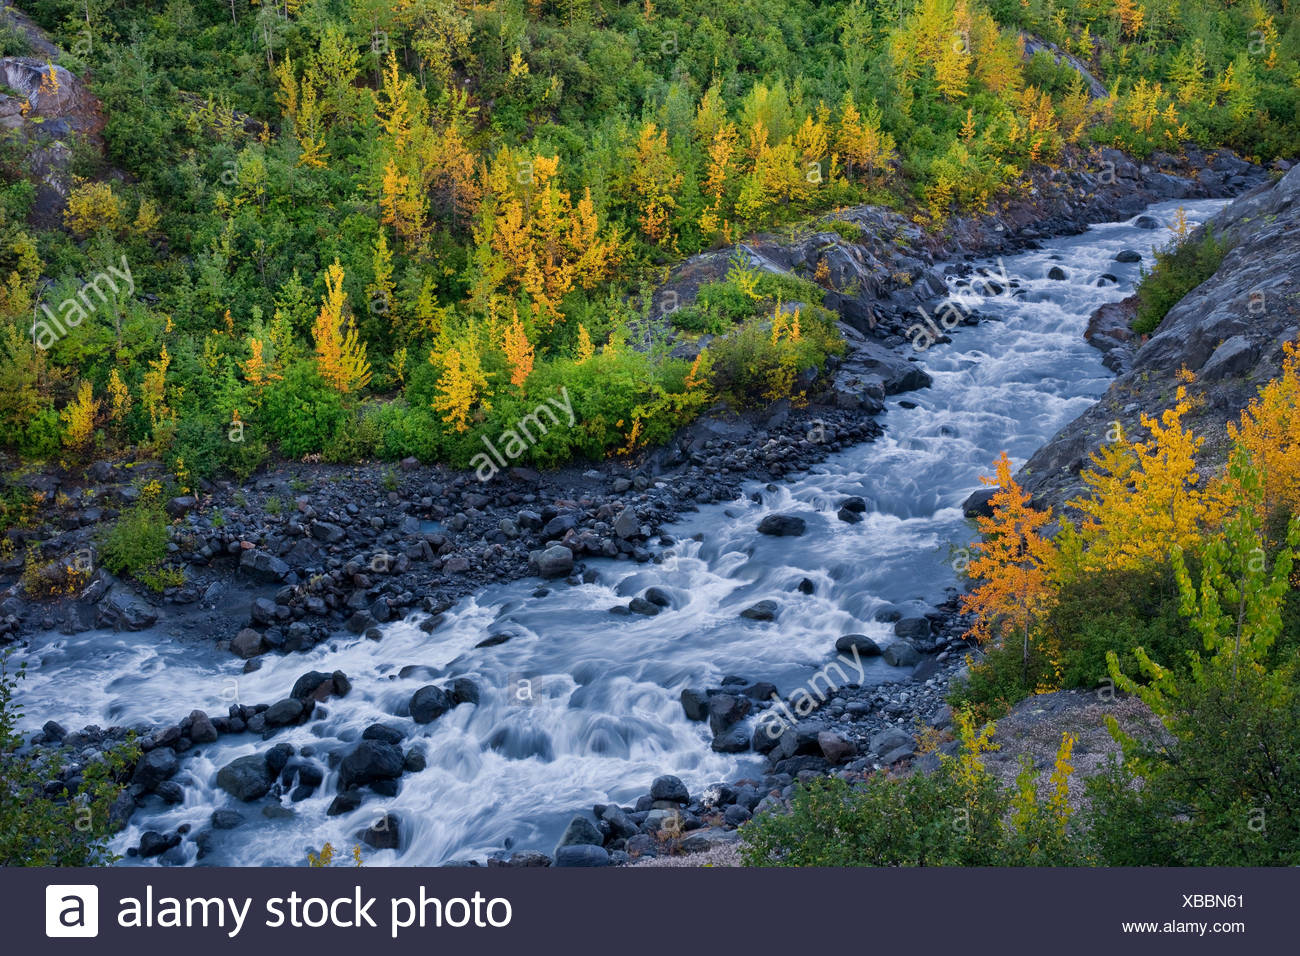 Overlooking Eagle River Gorge, Chugach State Park, Southcentral Alaska, Autumn - Stock Image